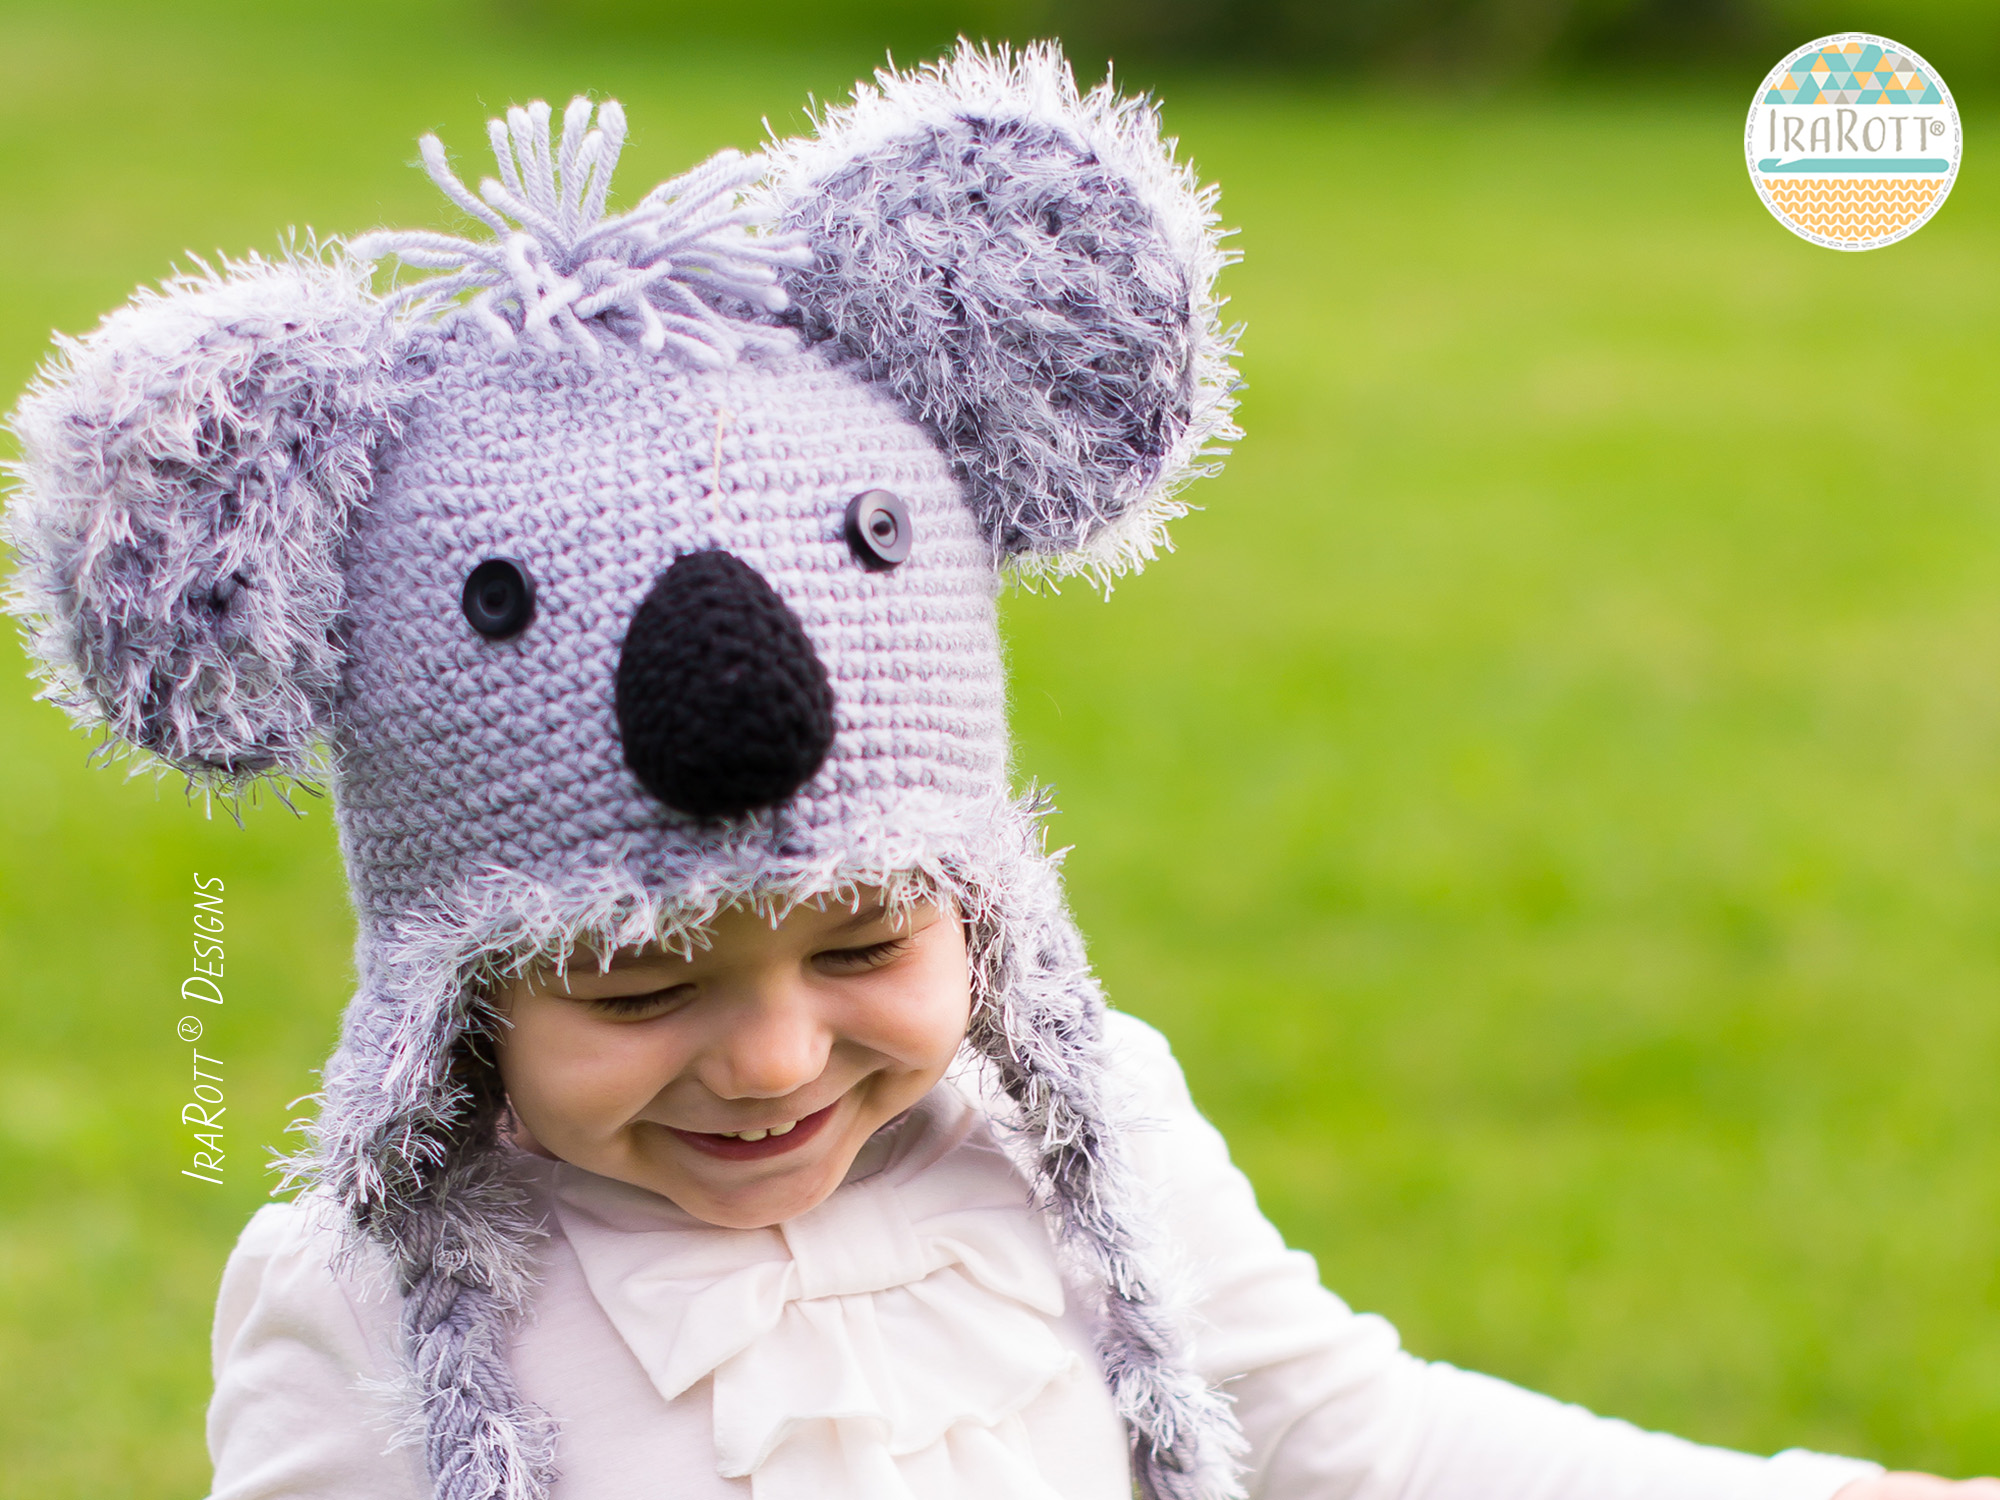 Koala Bear Animal Hat Crochet Pattern for boys and girls of all sizes by Irarott